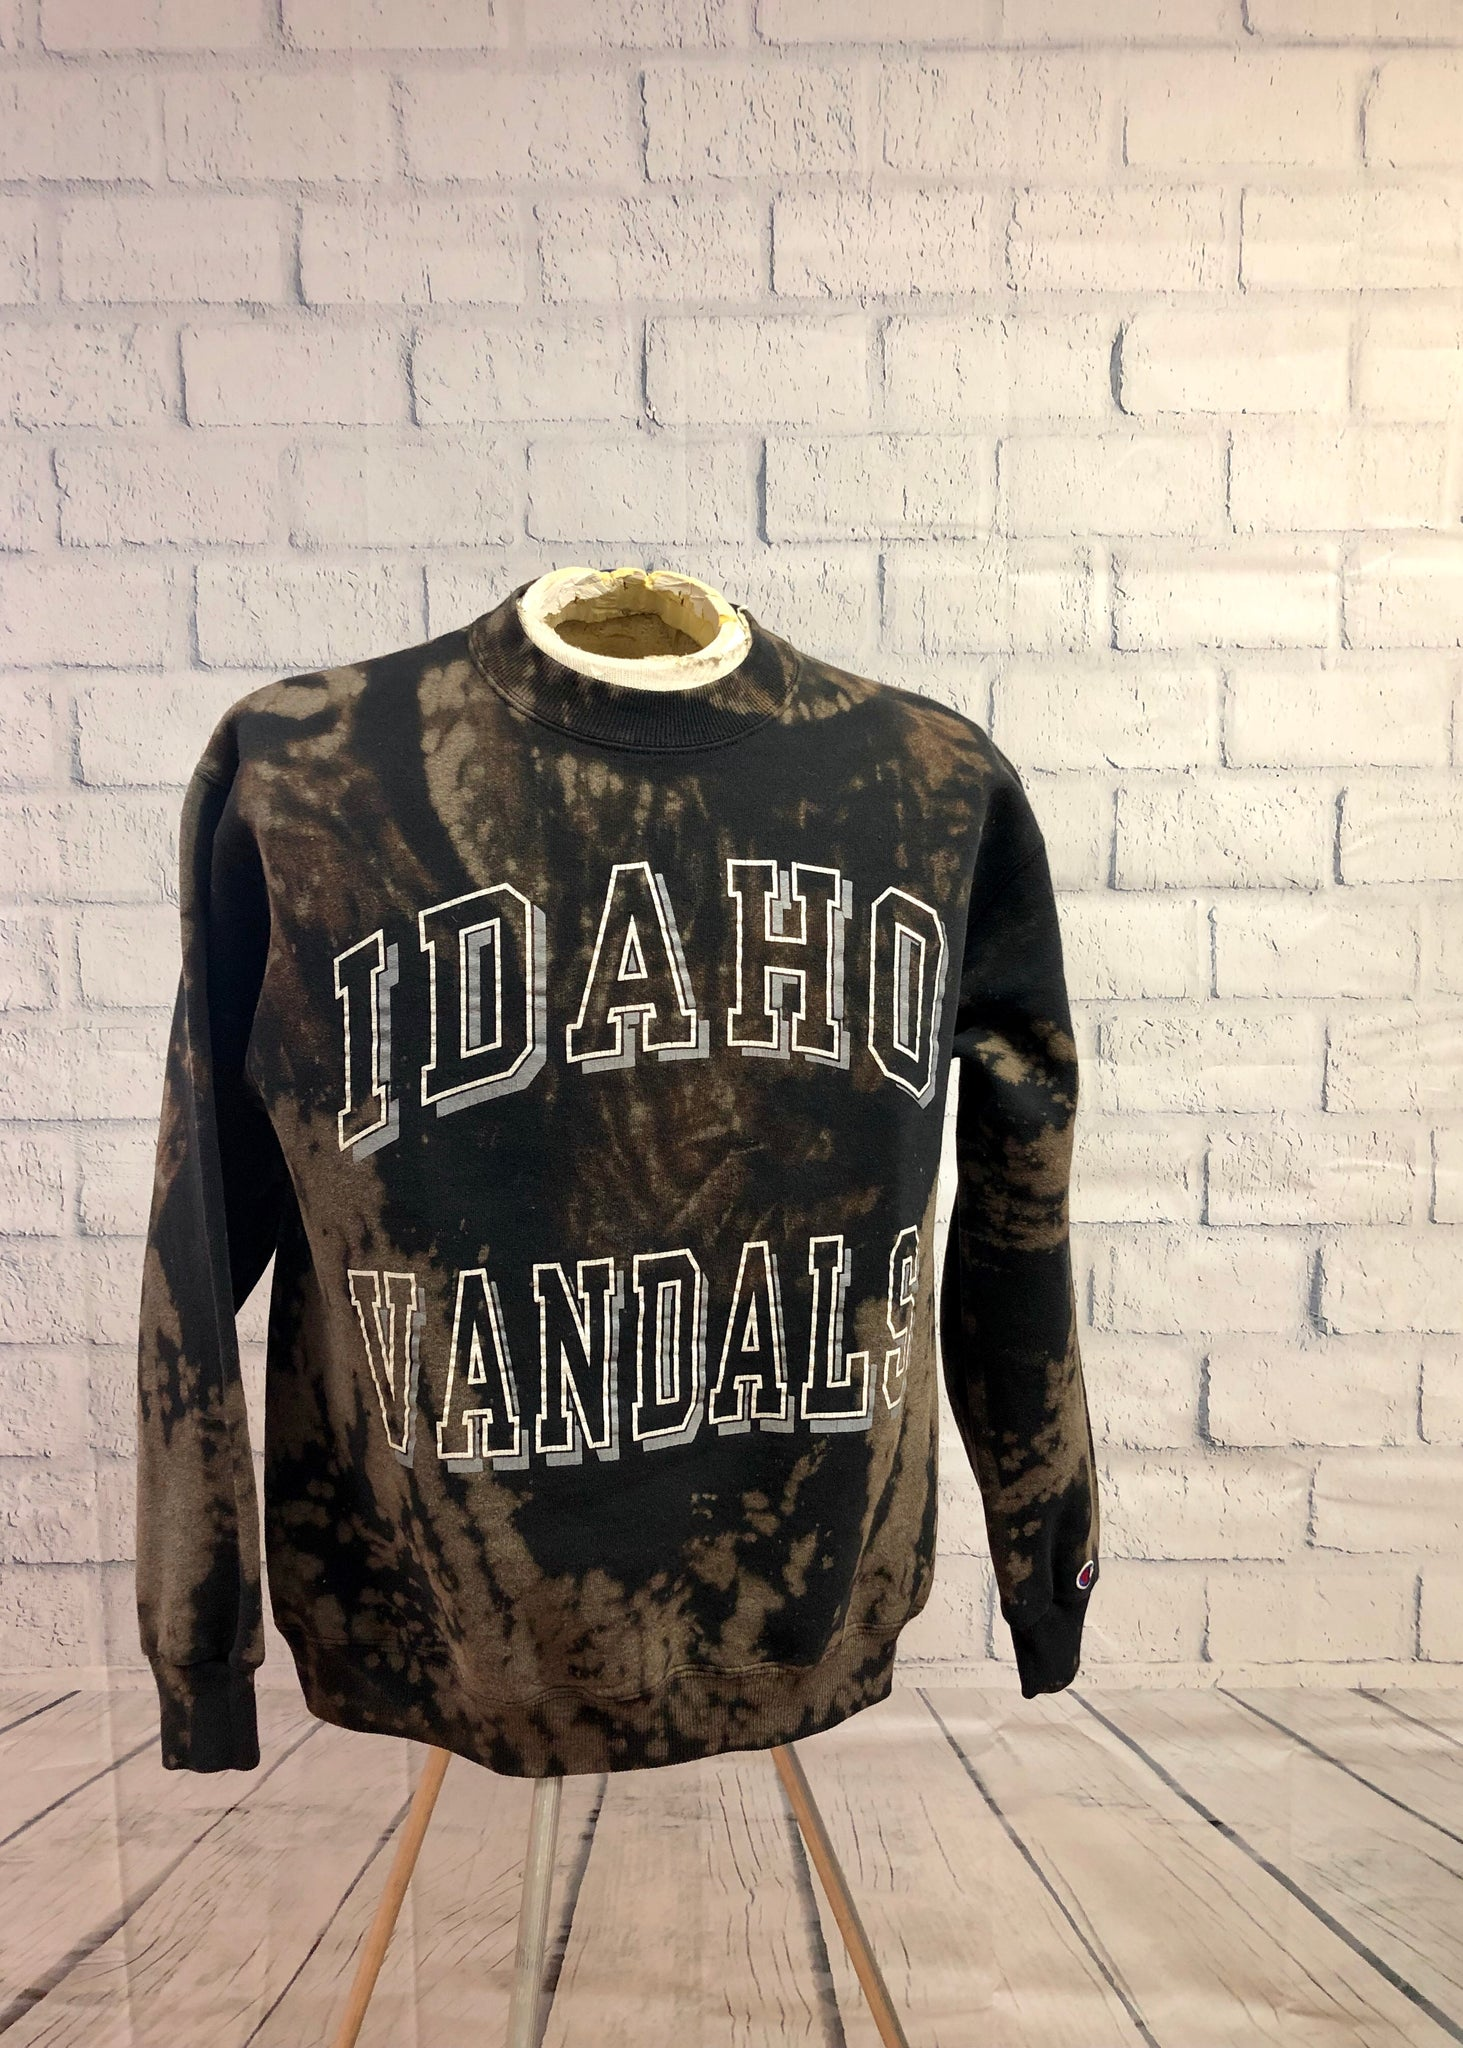 University of Idaho Grunge Sweatshirt